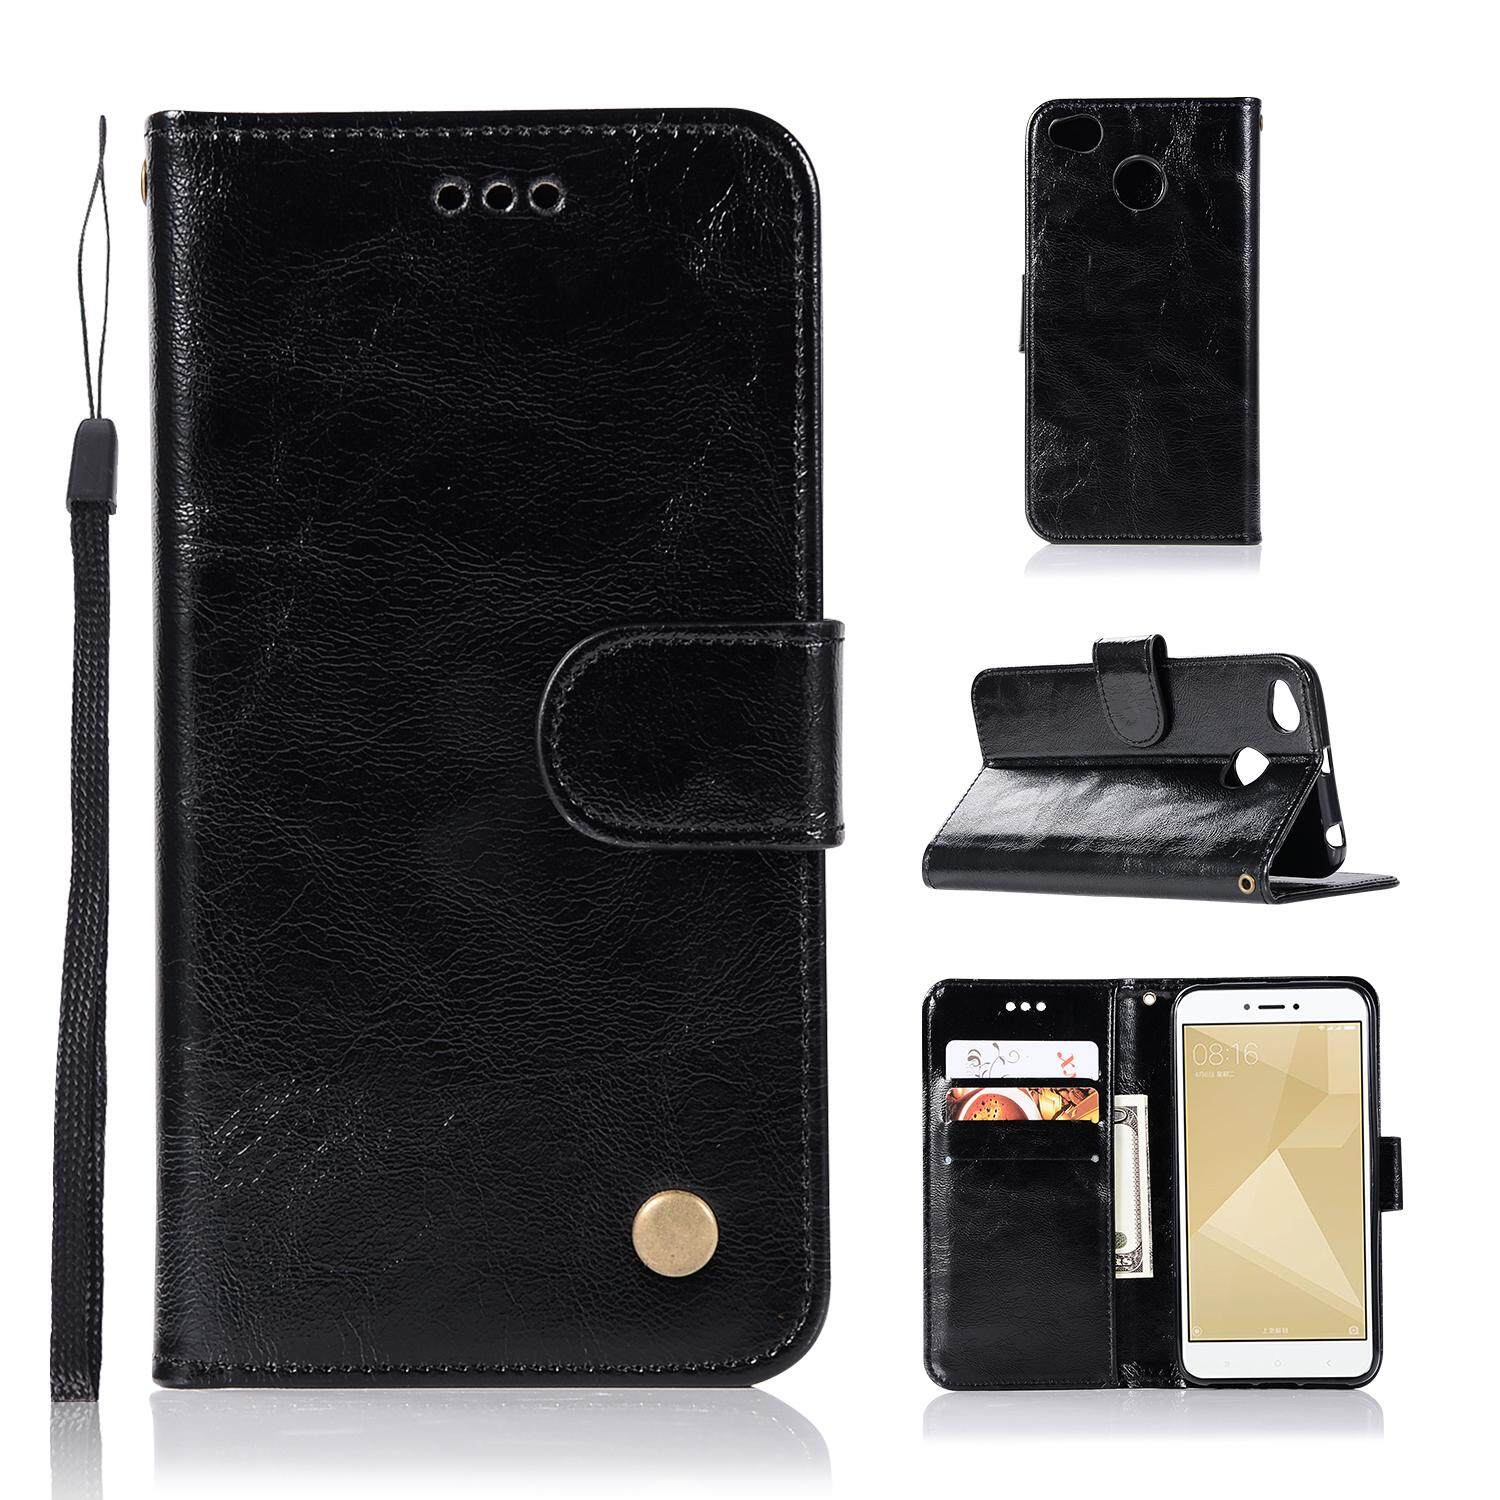 Casing For Xiaomi Redmi 4x,reto Leather Wallet Case Magnetic Double Card Holder Flip Cover By Life Goes On.